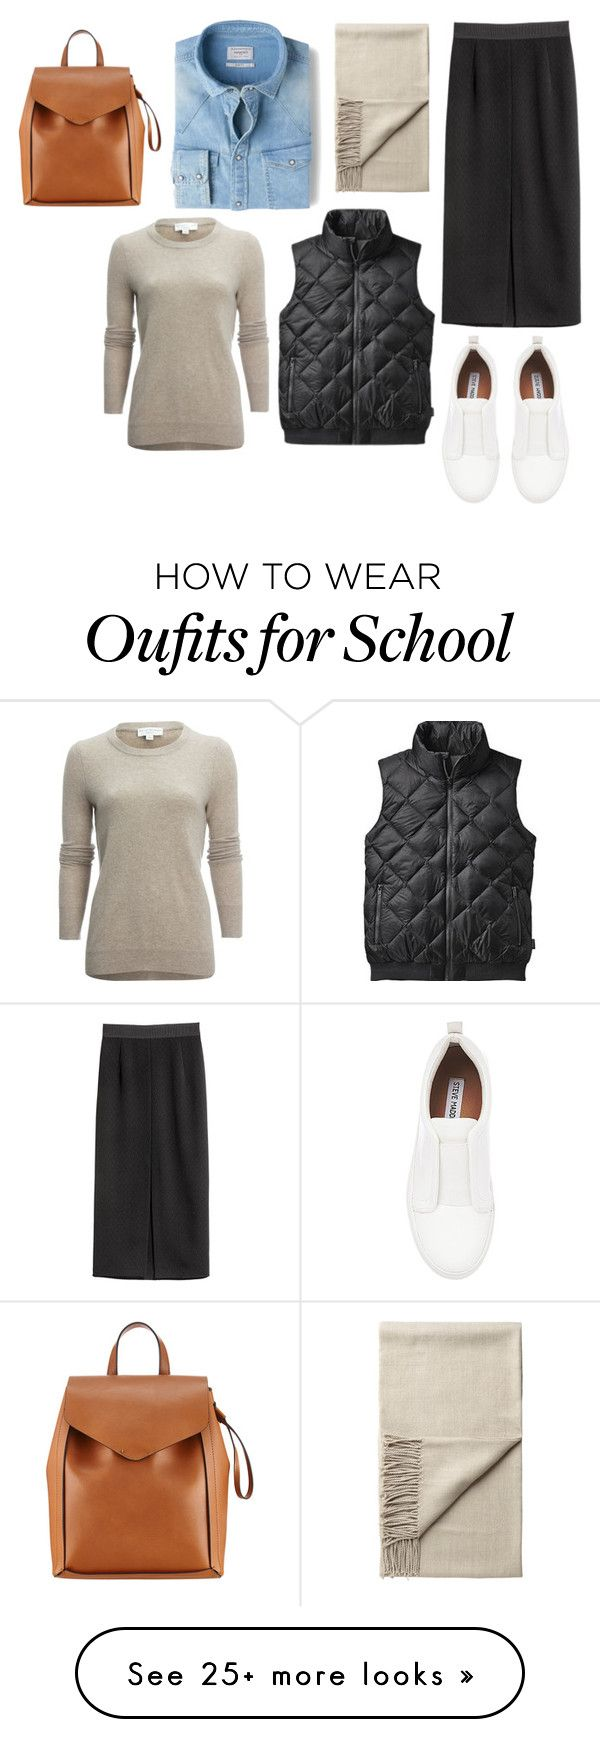 """Just Another Day at School"" by design360 on Polyvore featuring Monki, MANGO, White + Warren, Patagonia, Steve Madden and Loeffler Randall"